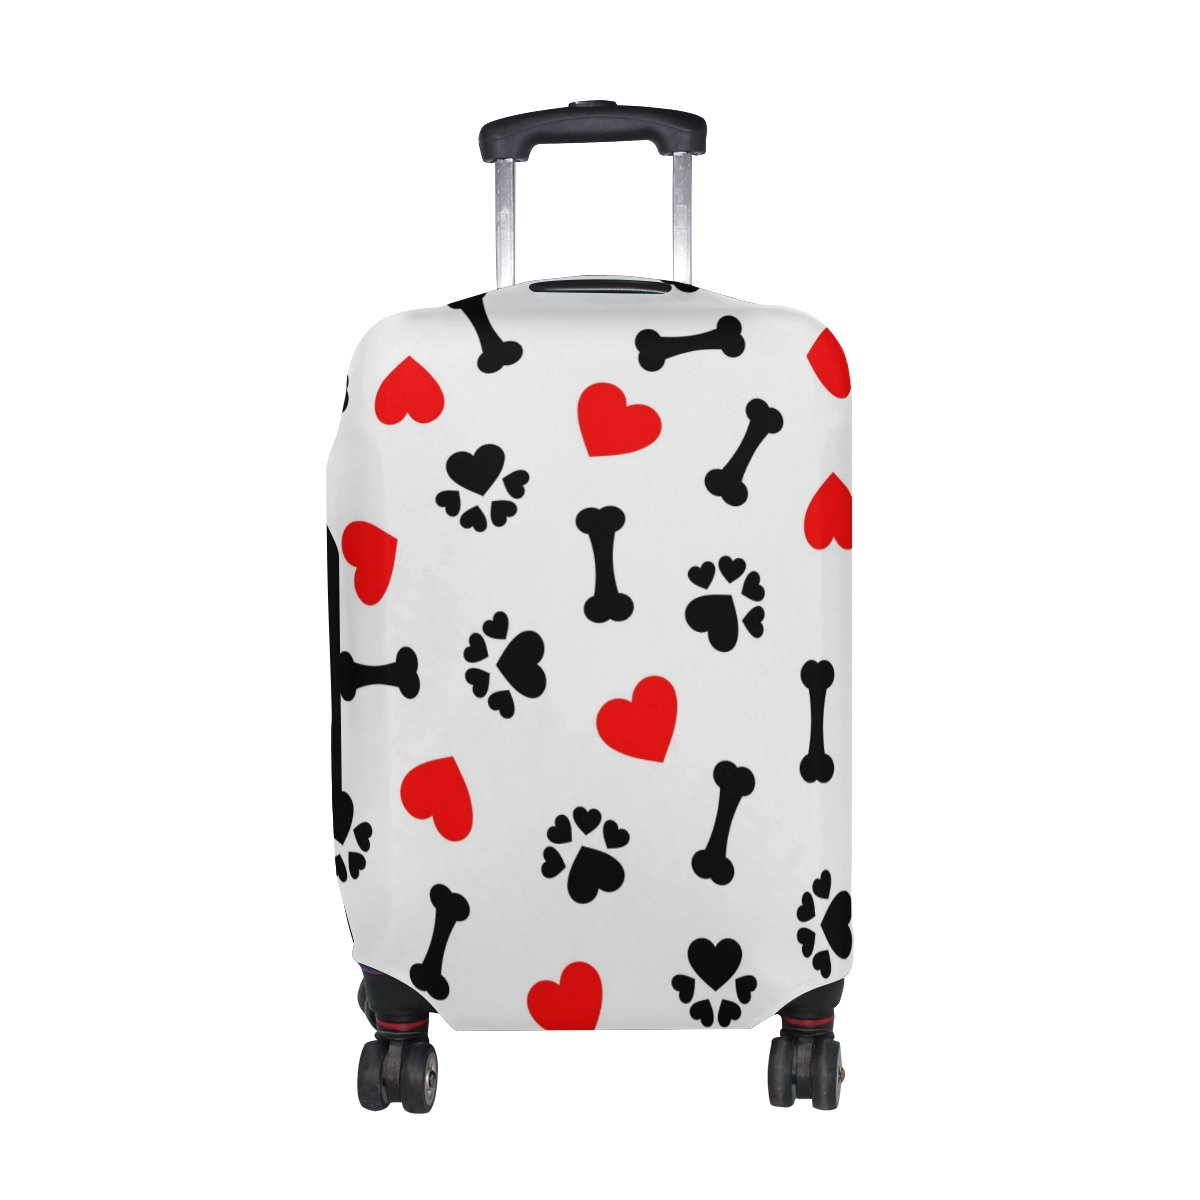 U LIFE Cute Vintage Dog Black And White Love Luggage Suitcase Cover Protector